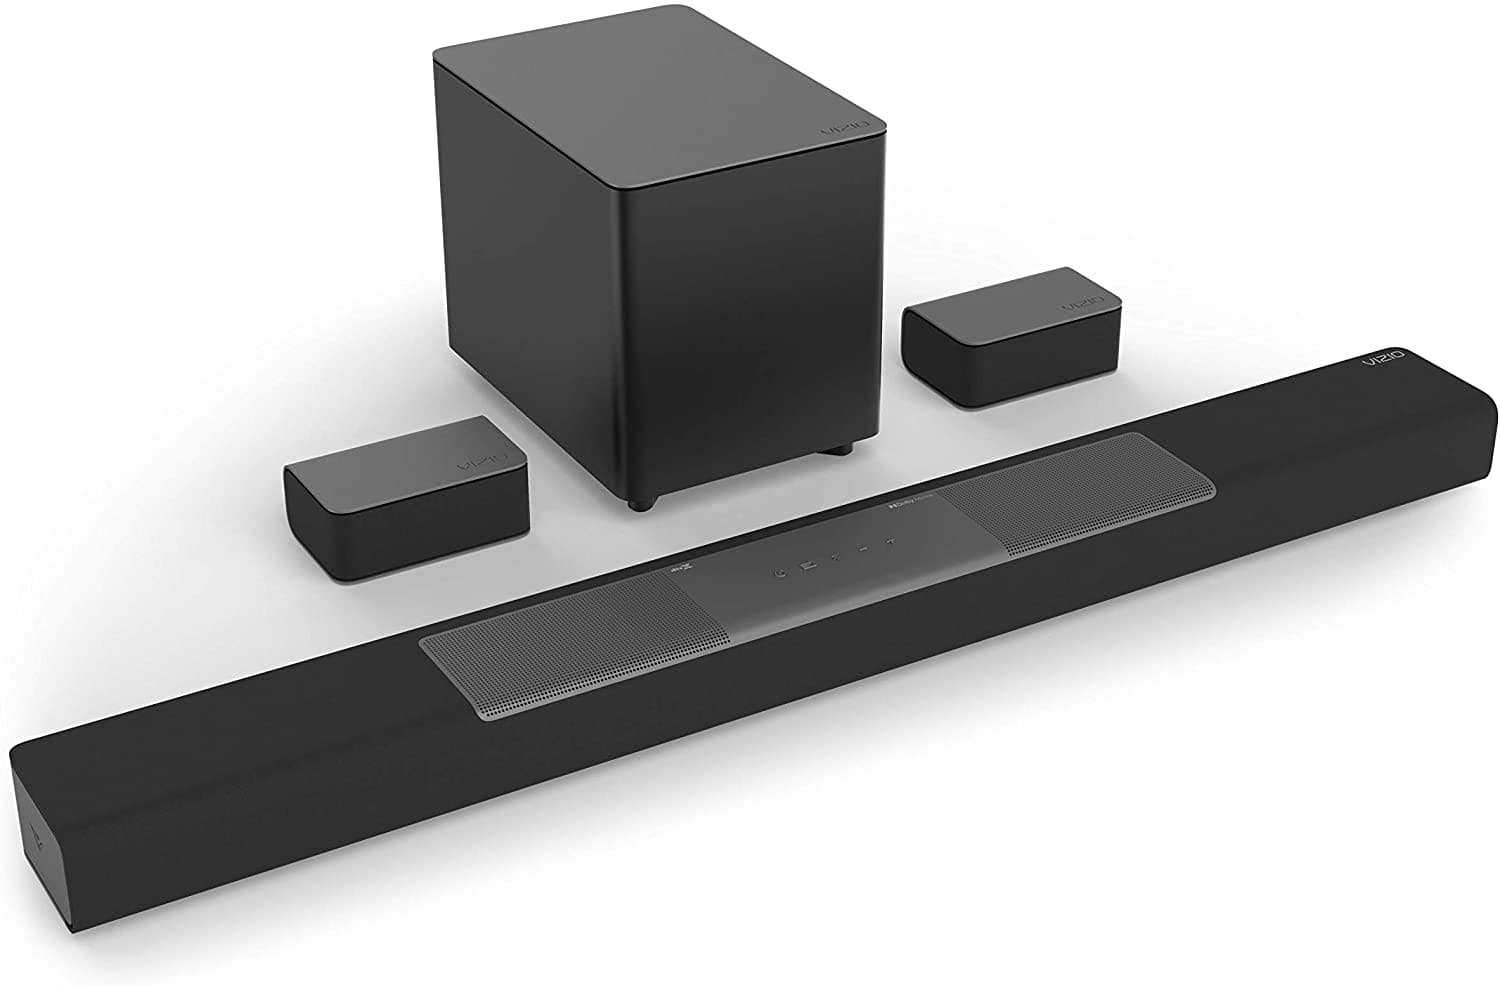 VIZIO M-Series 5.1.2 M512a-H6  Sound Bar with Dolby Atmos and DTS:X $299.88 at Amazon